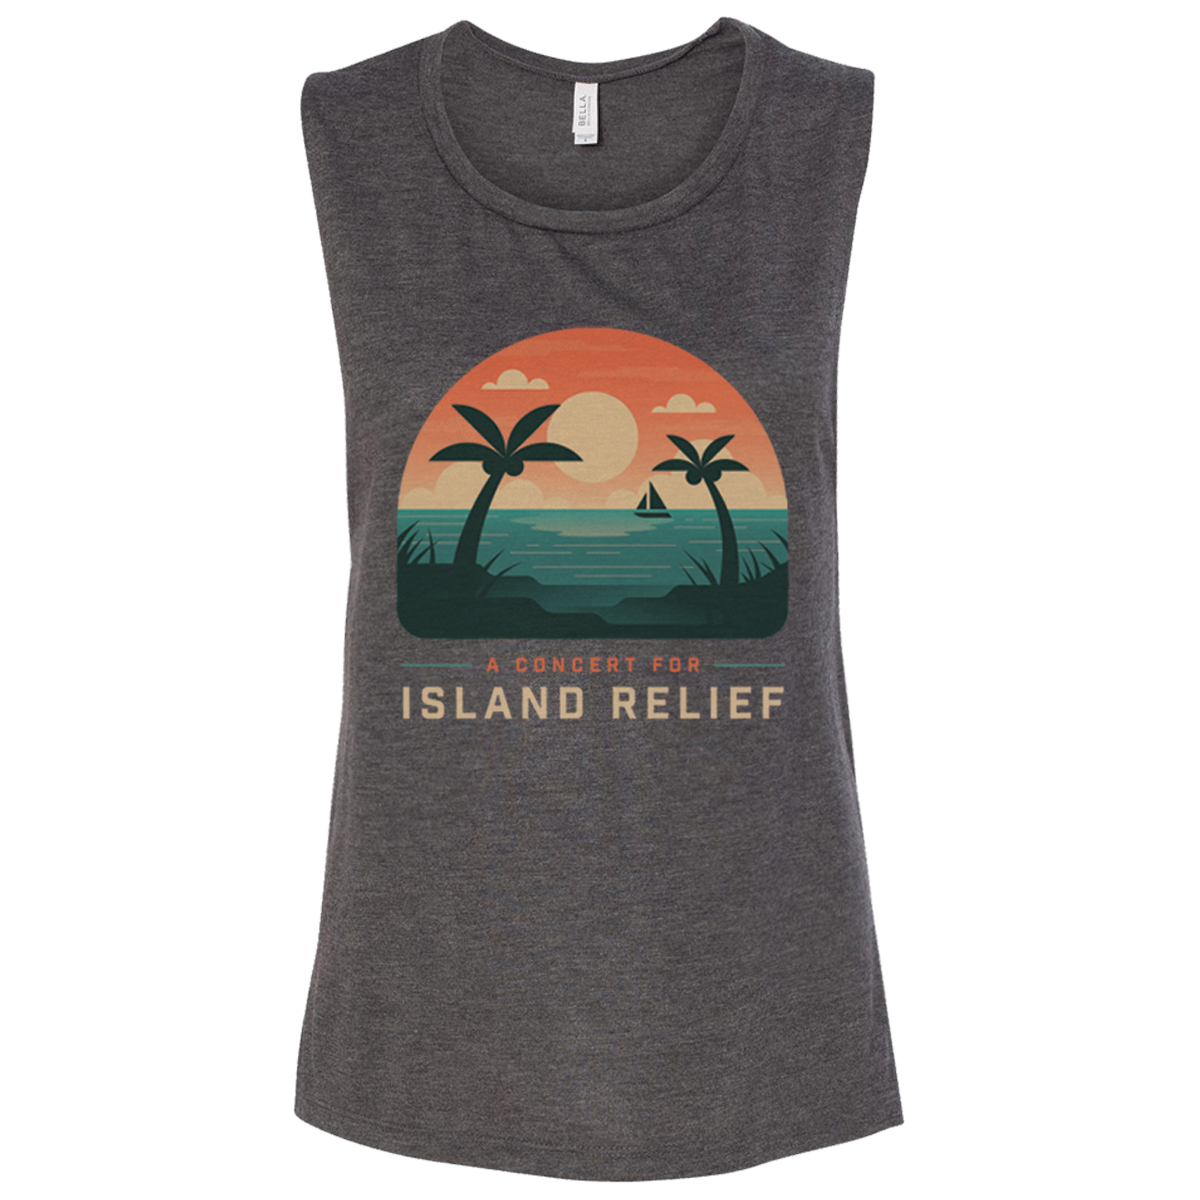 Concert for Island Relief Women's Ocean Scene Muscle Tank